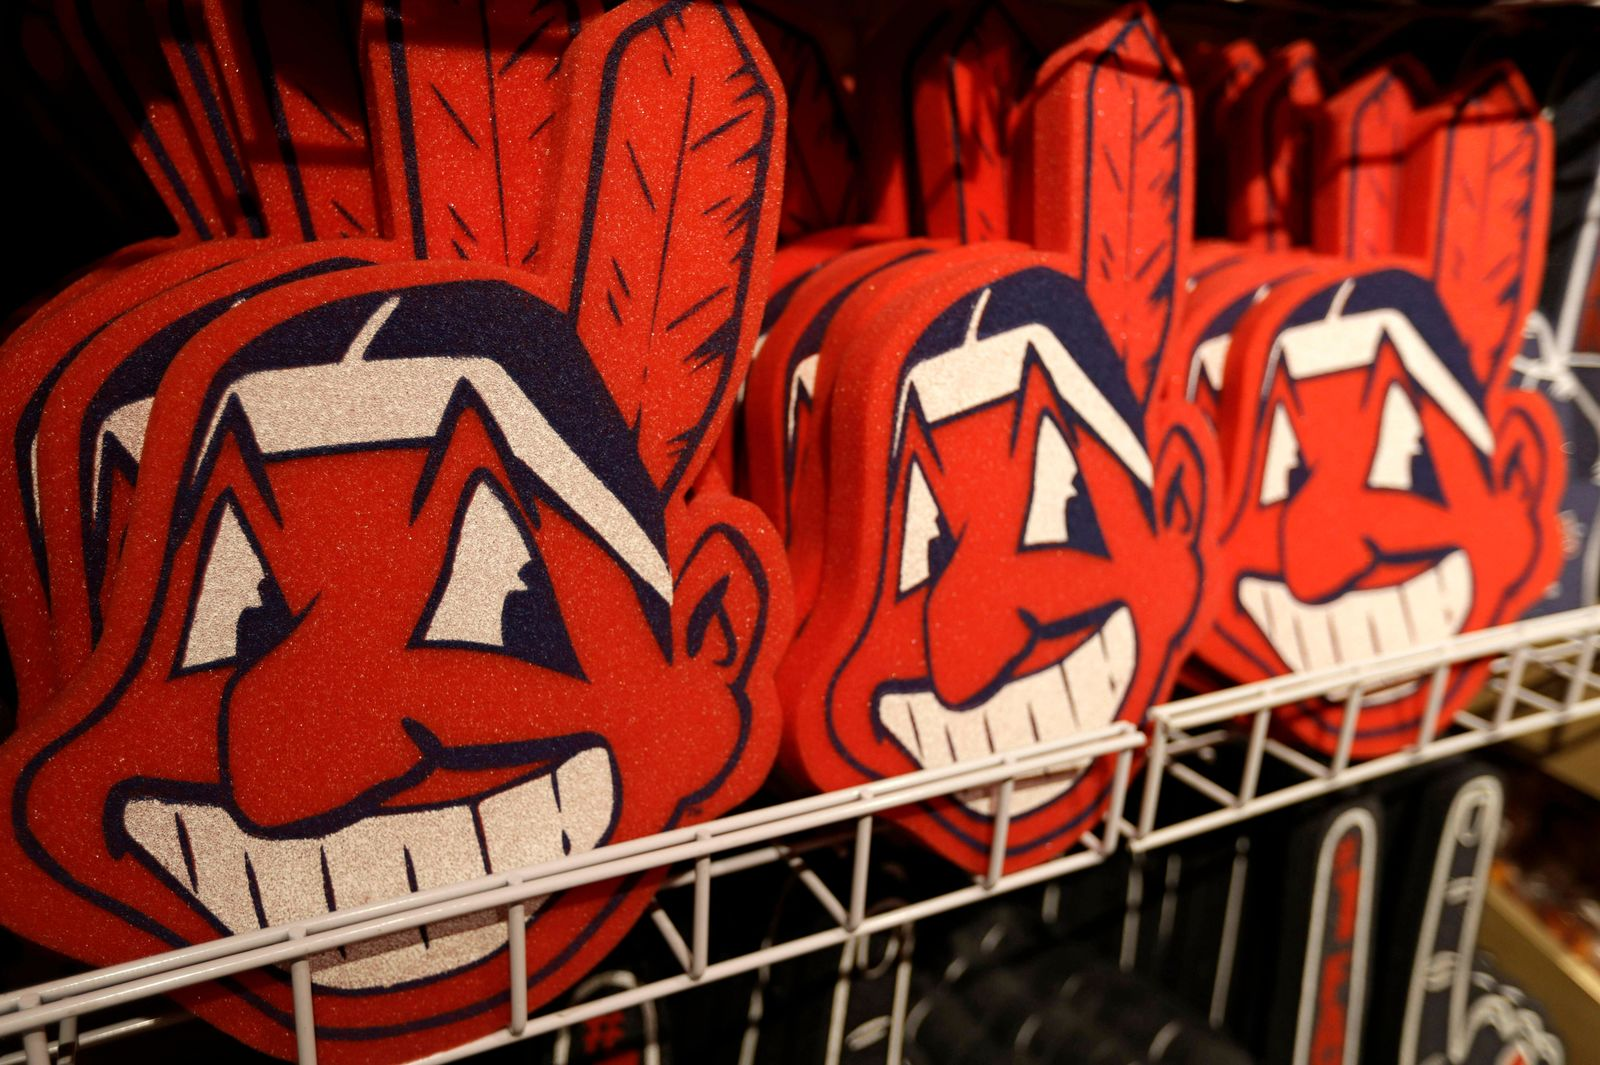 FILE - In this Jan. 29, 2018, file photo, foam images of the Cleveland Indians baseball team mascot Chief Wahoo are displayed for sale at the Indians' team shop in Cleveland. While Major League Baseball and the Indians mutually agreed in 2018 to completely remove him from the team's jerseys and caps as well as banners and signage in the ballpark starting this season, Chief Wahoo appears to be as visible as ever. (AP Photo/Tony Dejak, File)